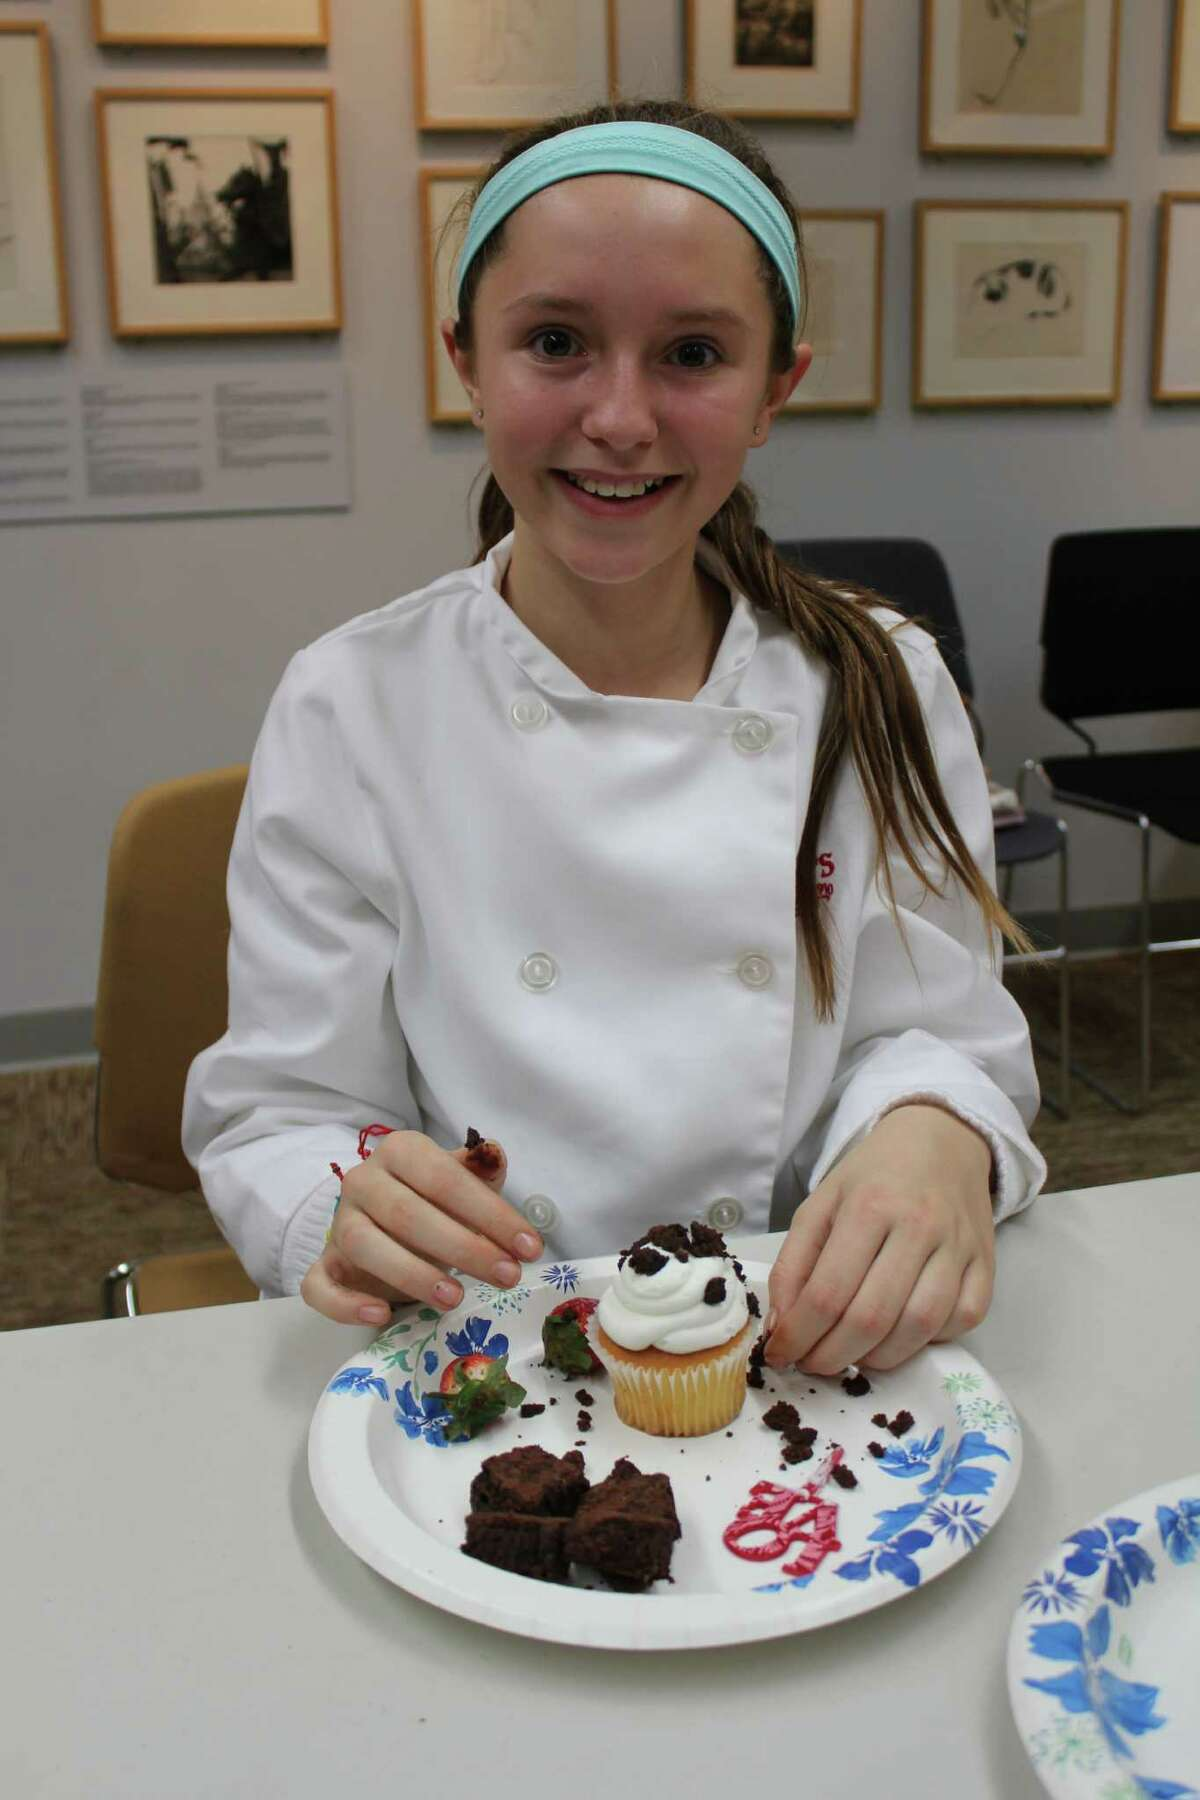 Were you SEEN at the Teen Master Chef challenge at the Westport Library on 1/18/14?